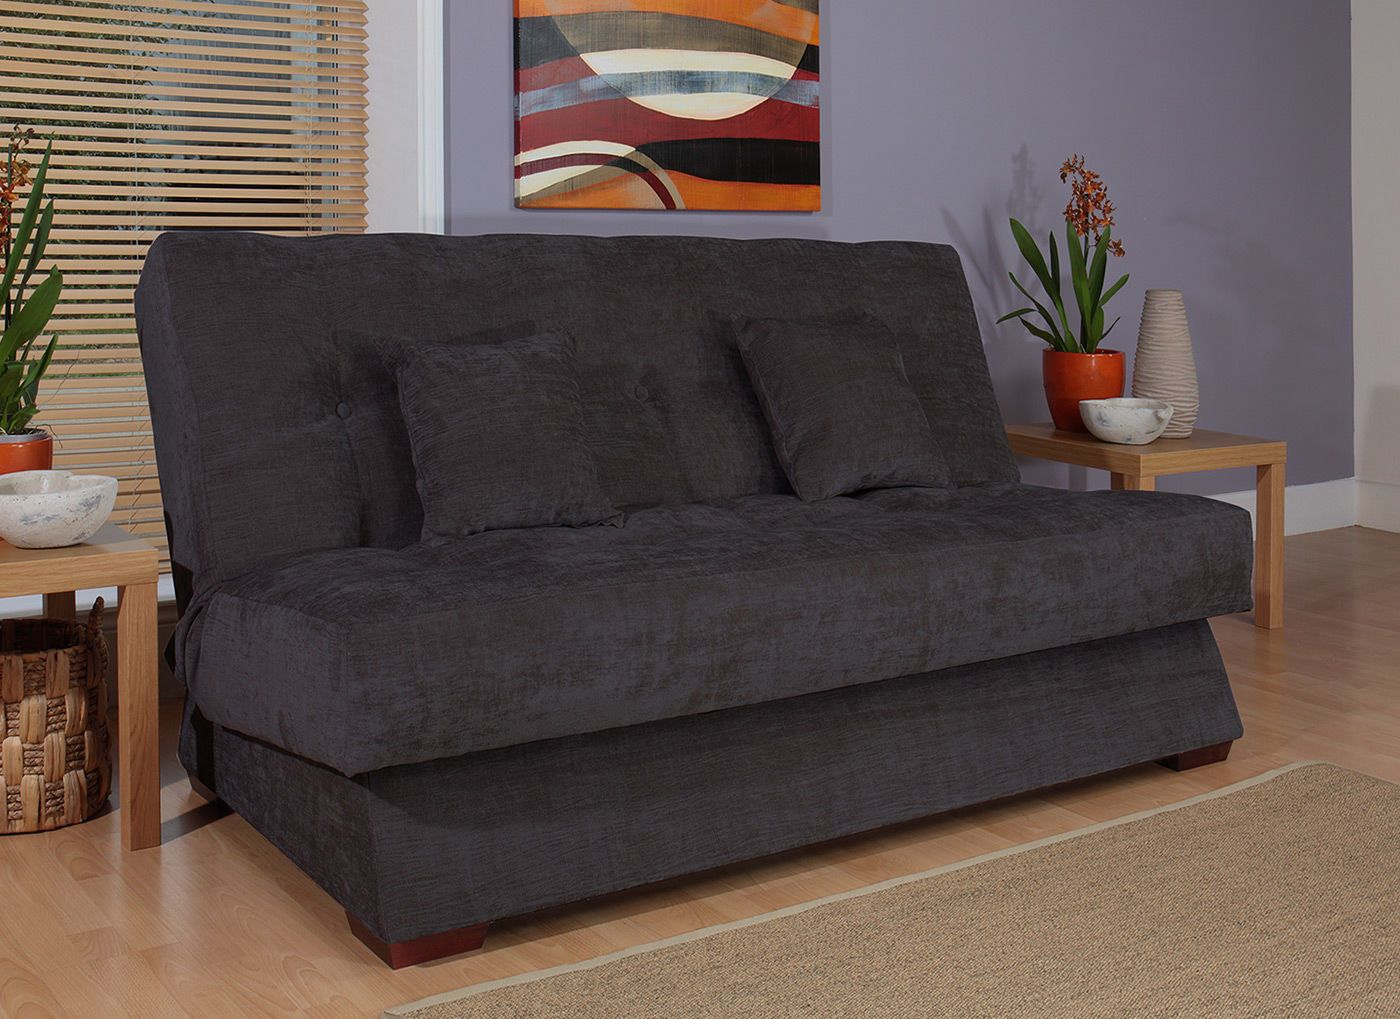 Sofa Beds Perth Perth Storage Sofa Bed Dreams Shopping List Sofa Bed Sofa Bed